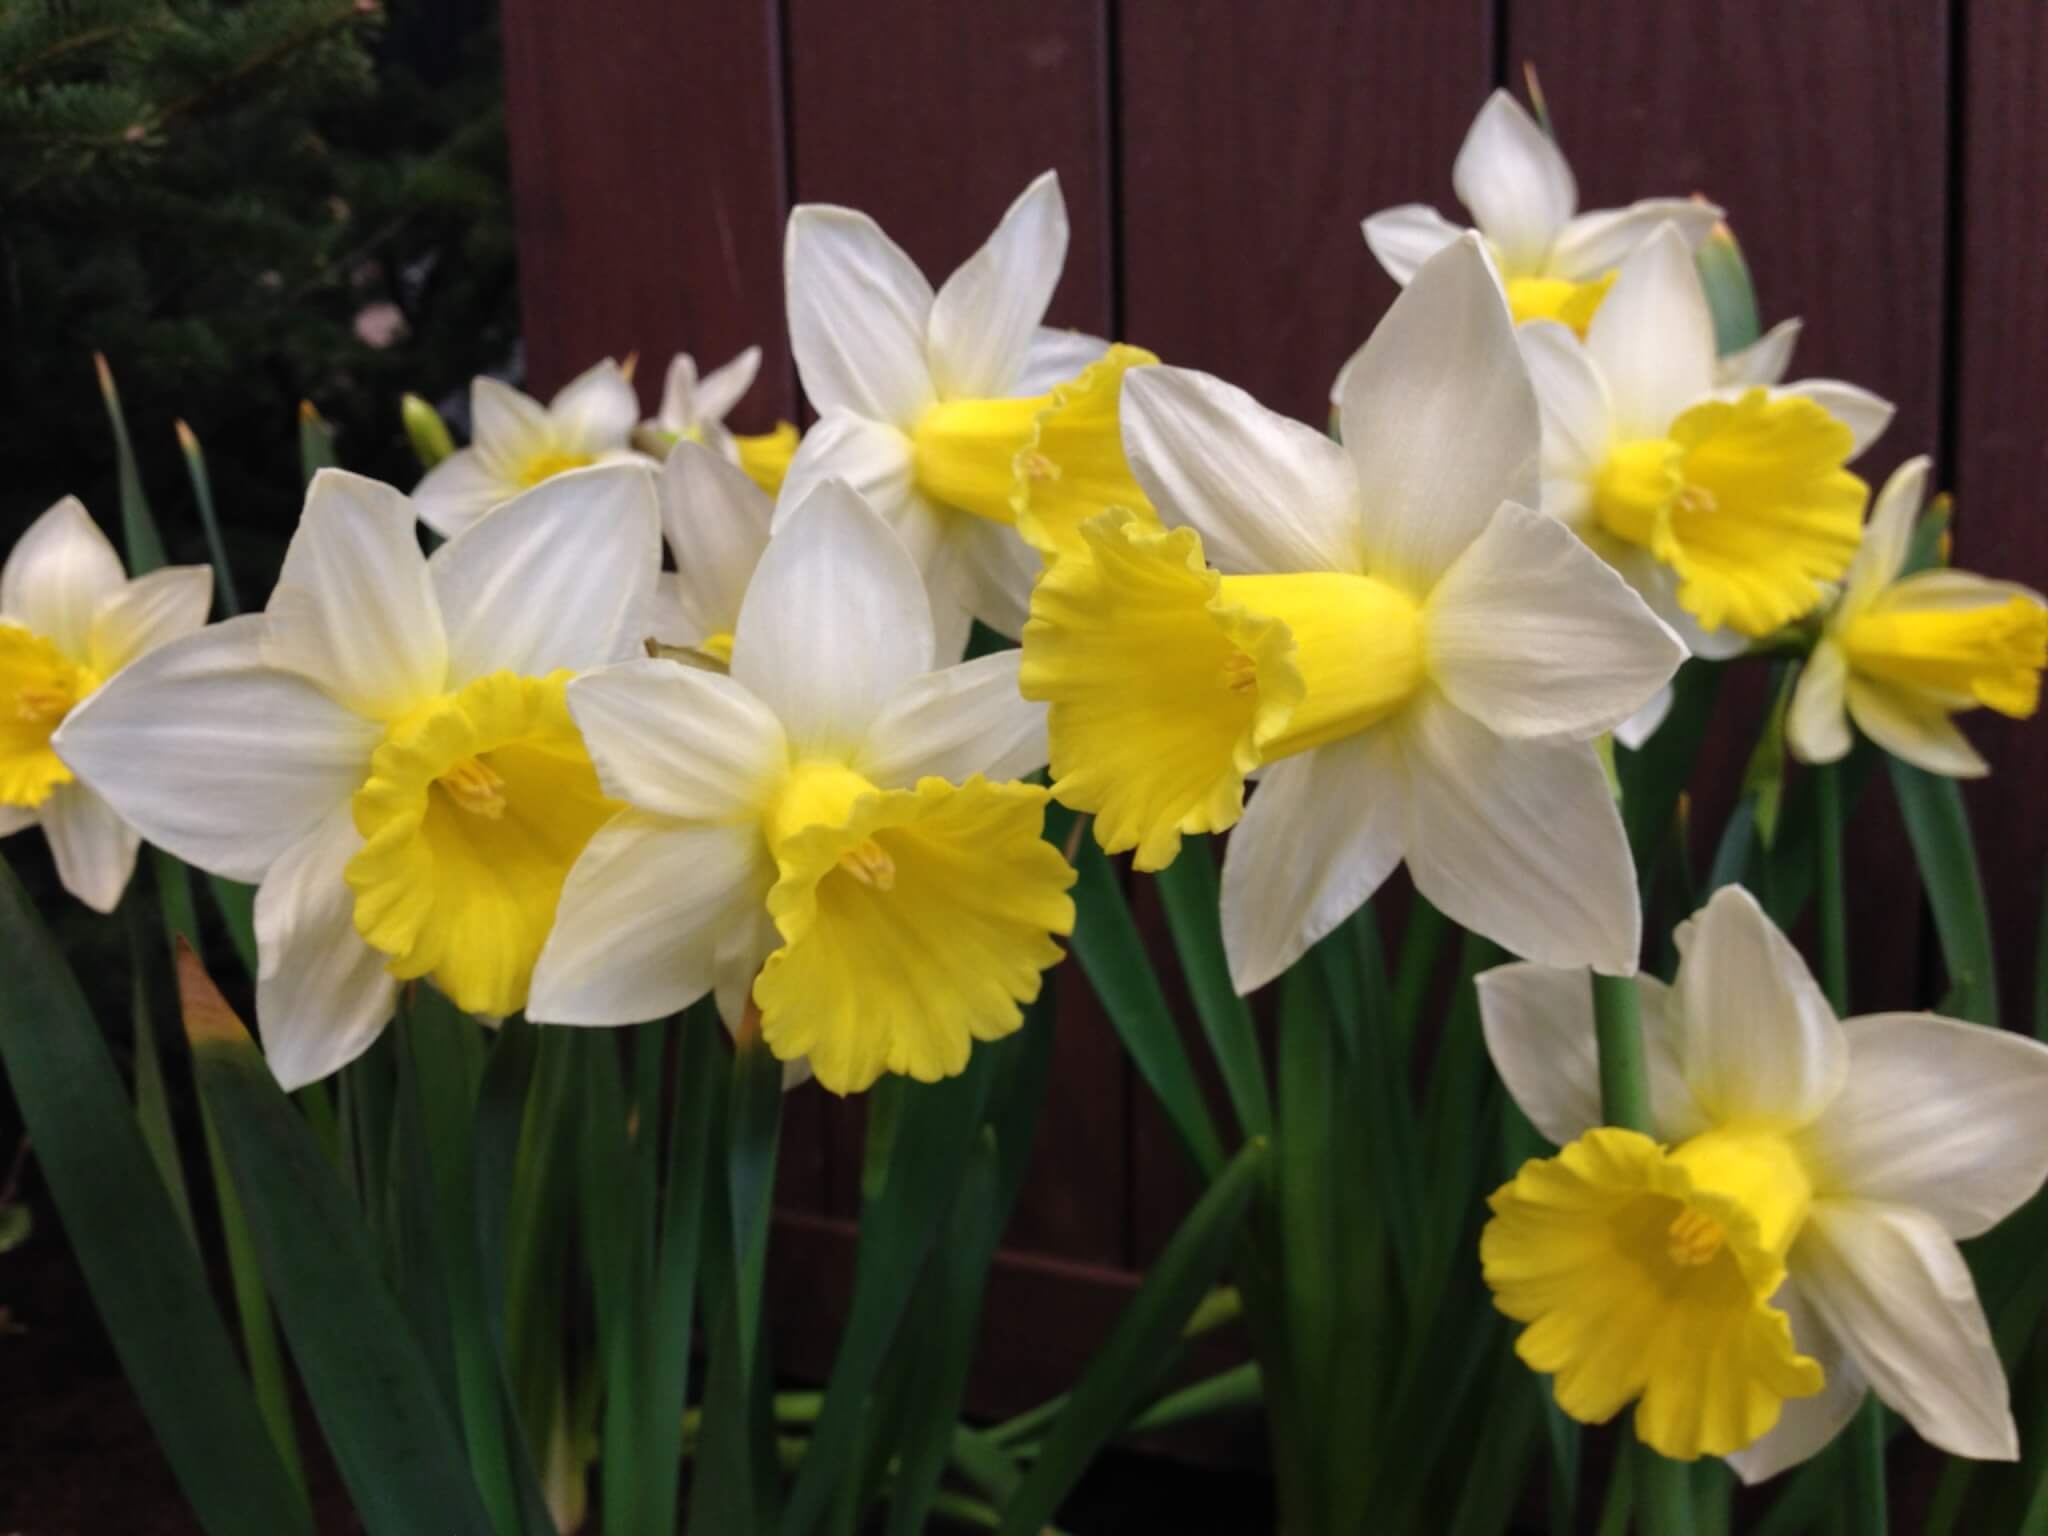 Group of 10-12 daffodils in full bloom with white pedals in a star shape around the yellow center which protrudes out and flairs open with ruffled edges along the front edge.